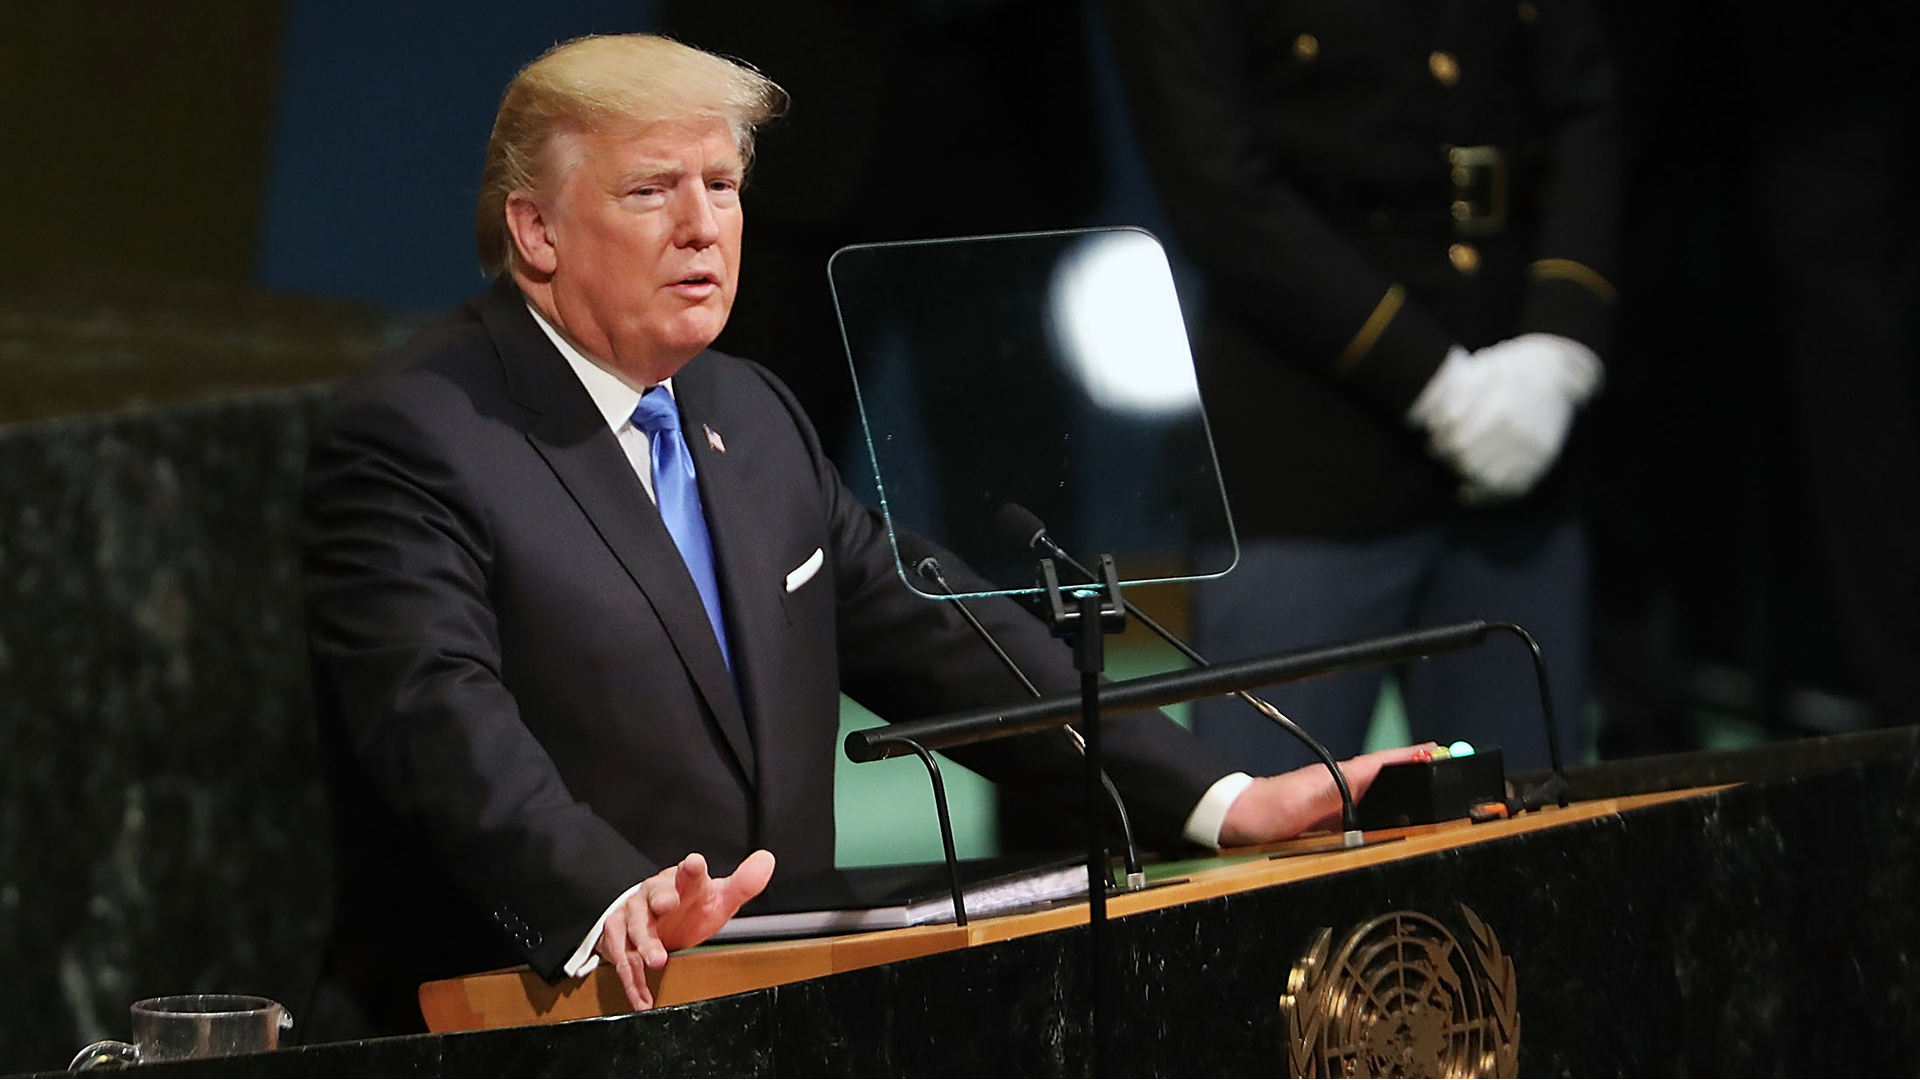 UN General Assembly Trump speaks side angle-159532.jpg33777813